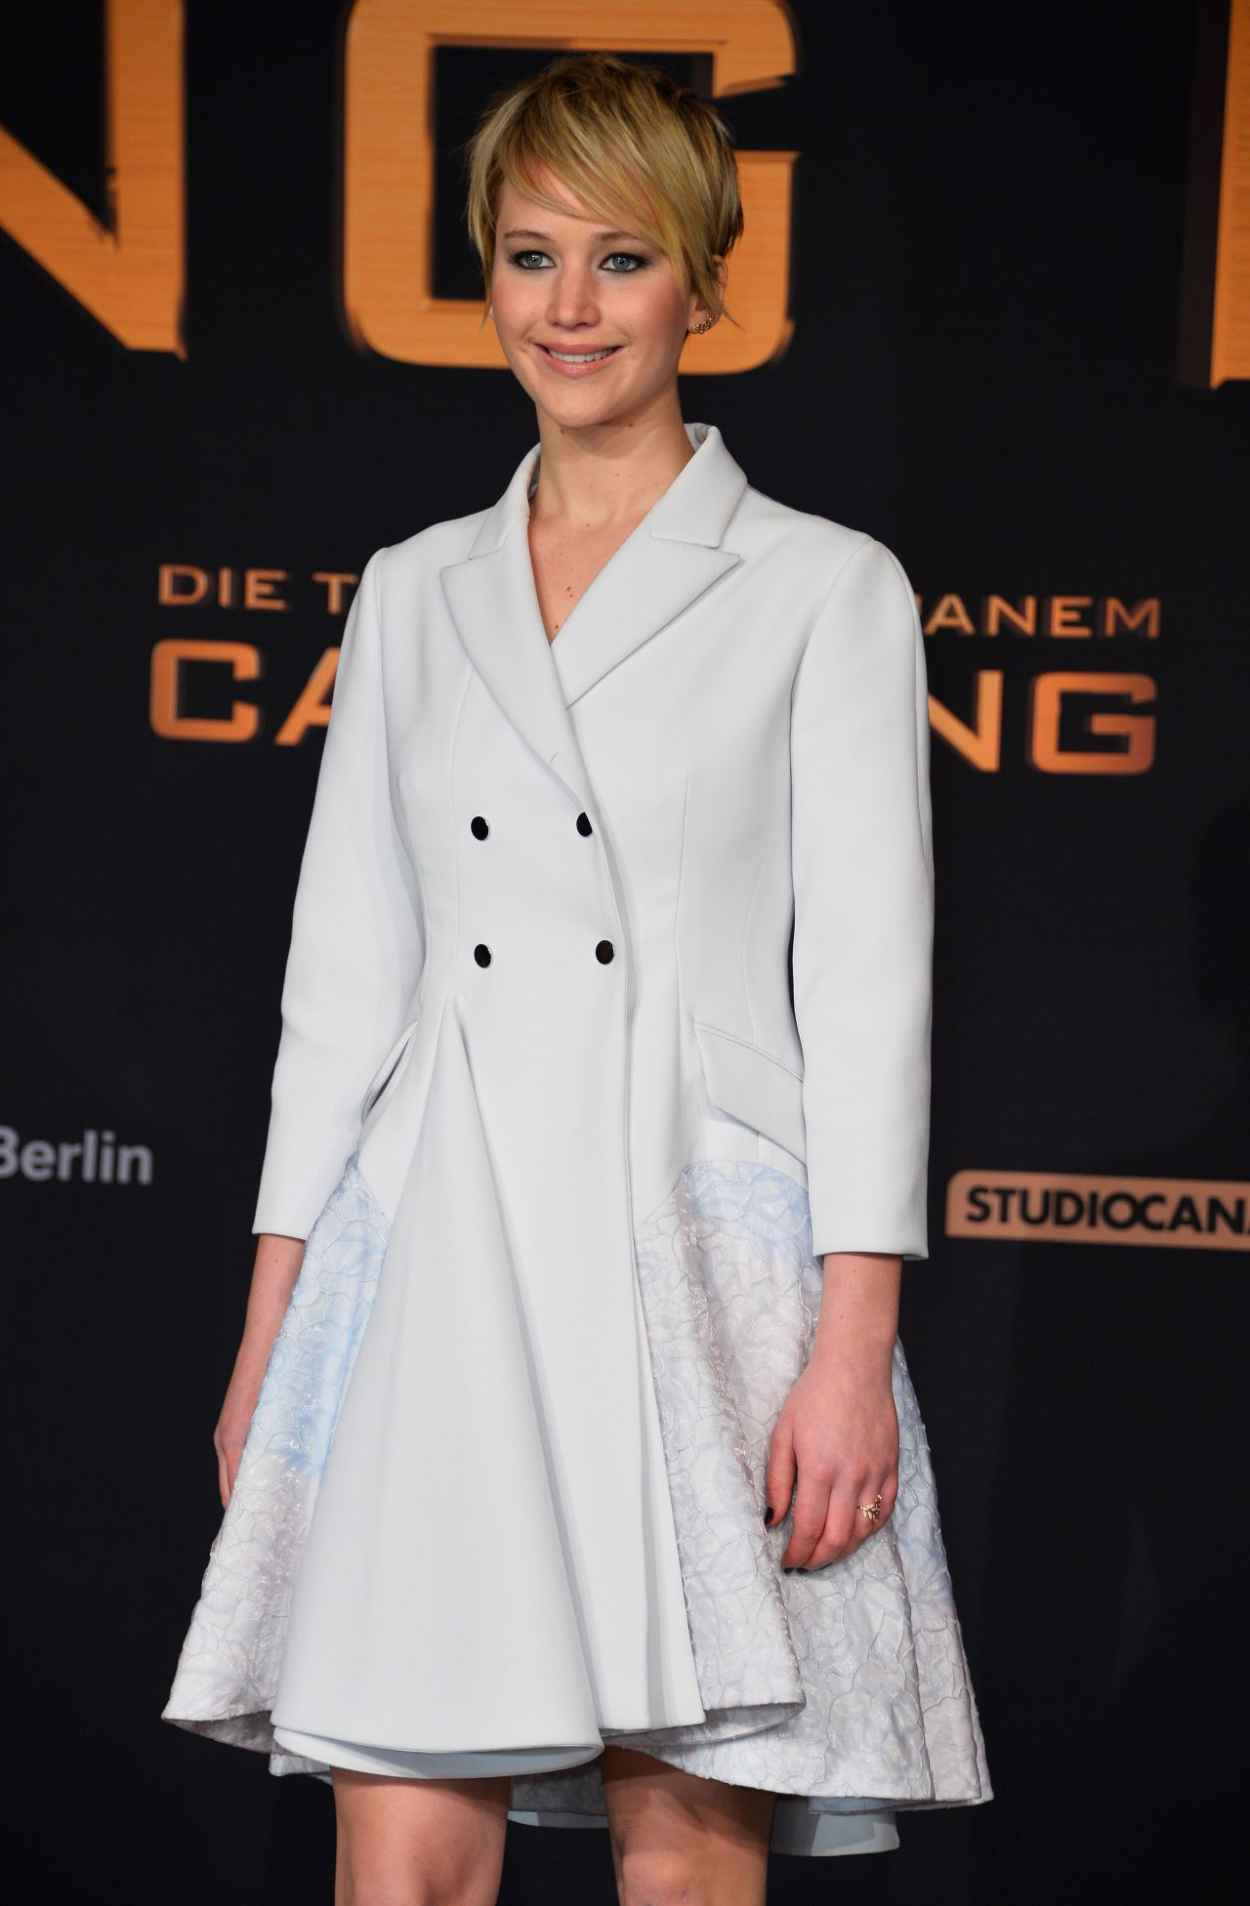 Jennifer Lawrence Red Carpet Photos - THE HUNGER GAMES: CATCHING FIRE Premiere in Berlin-1